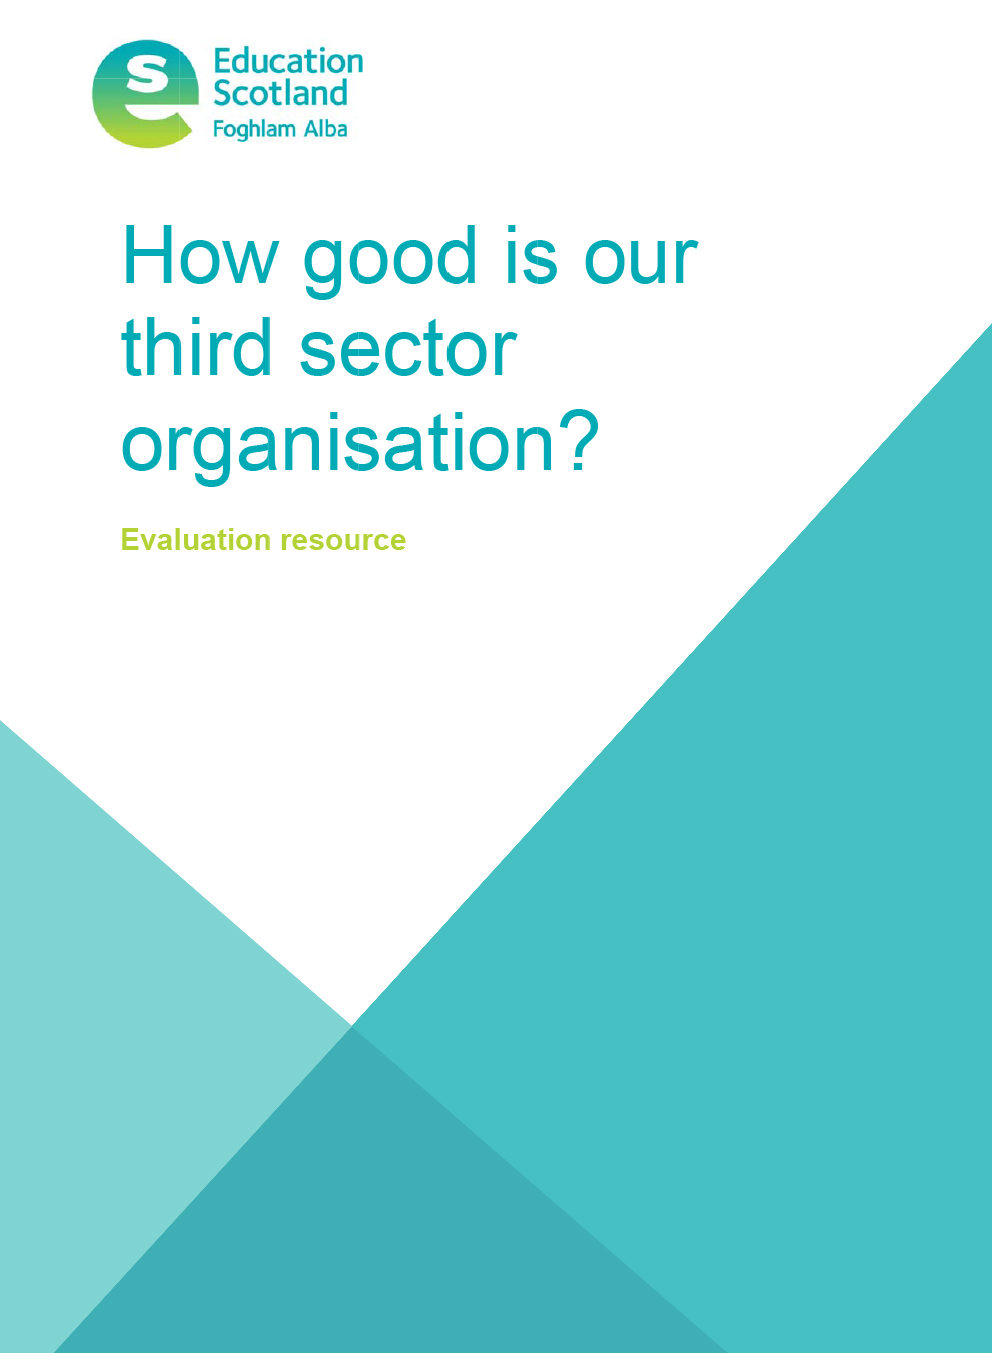 Free self-evaluation resource for third sector organisations